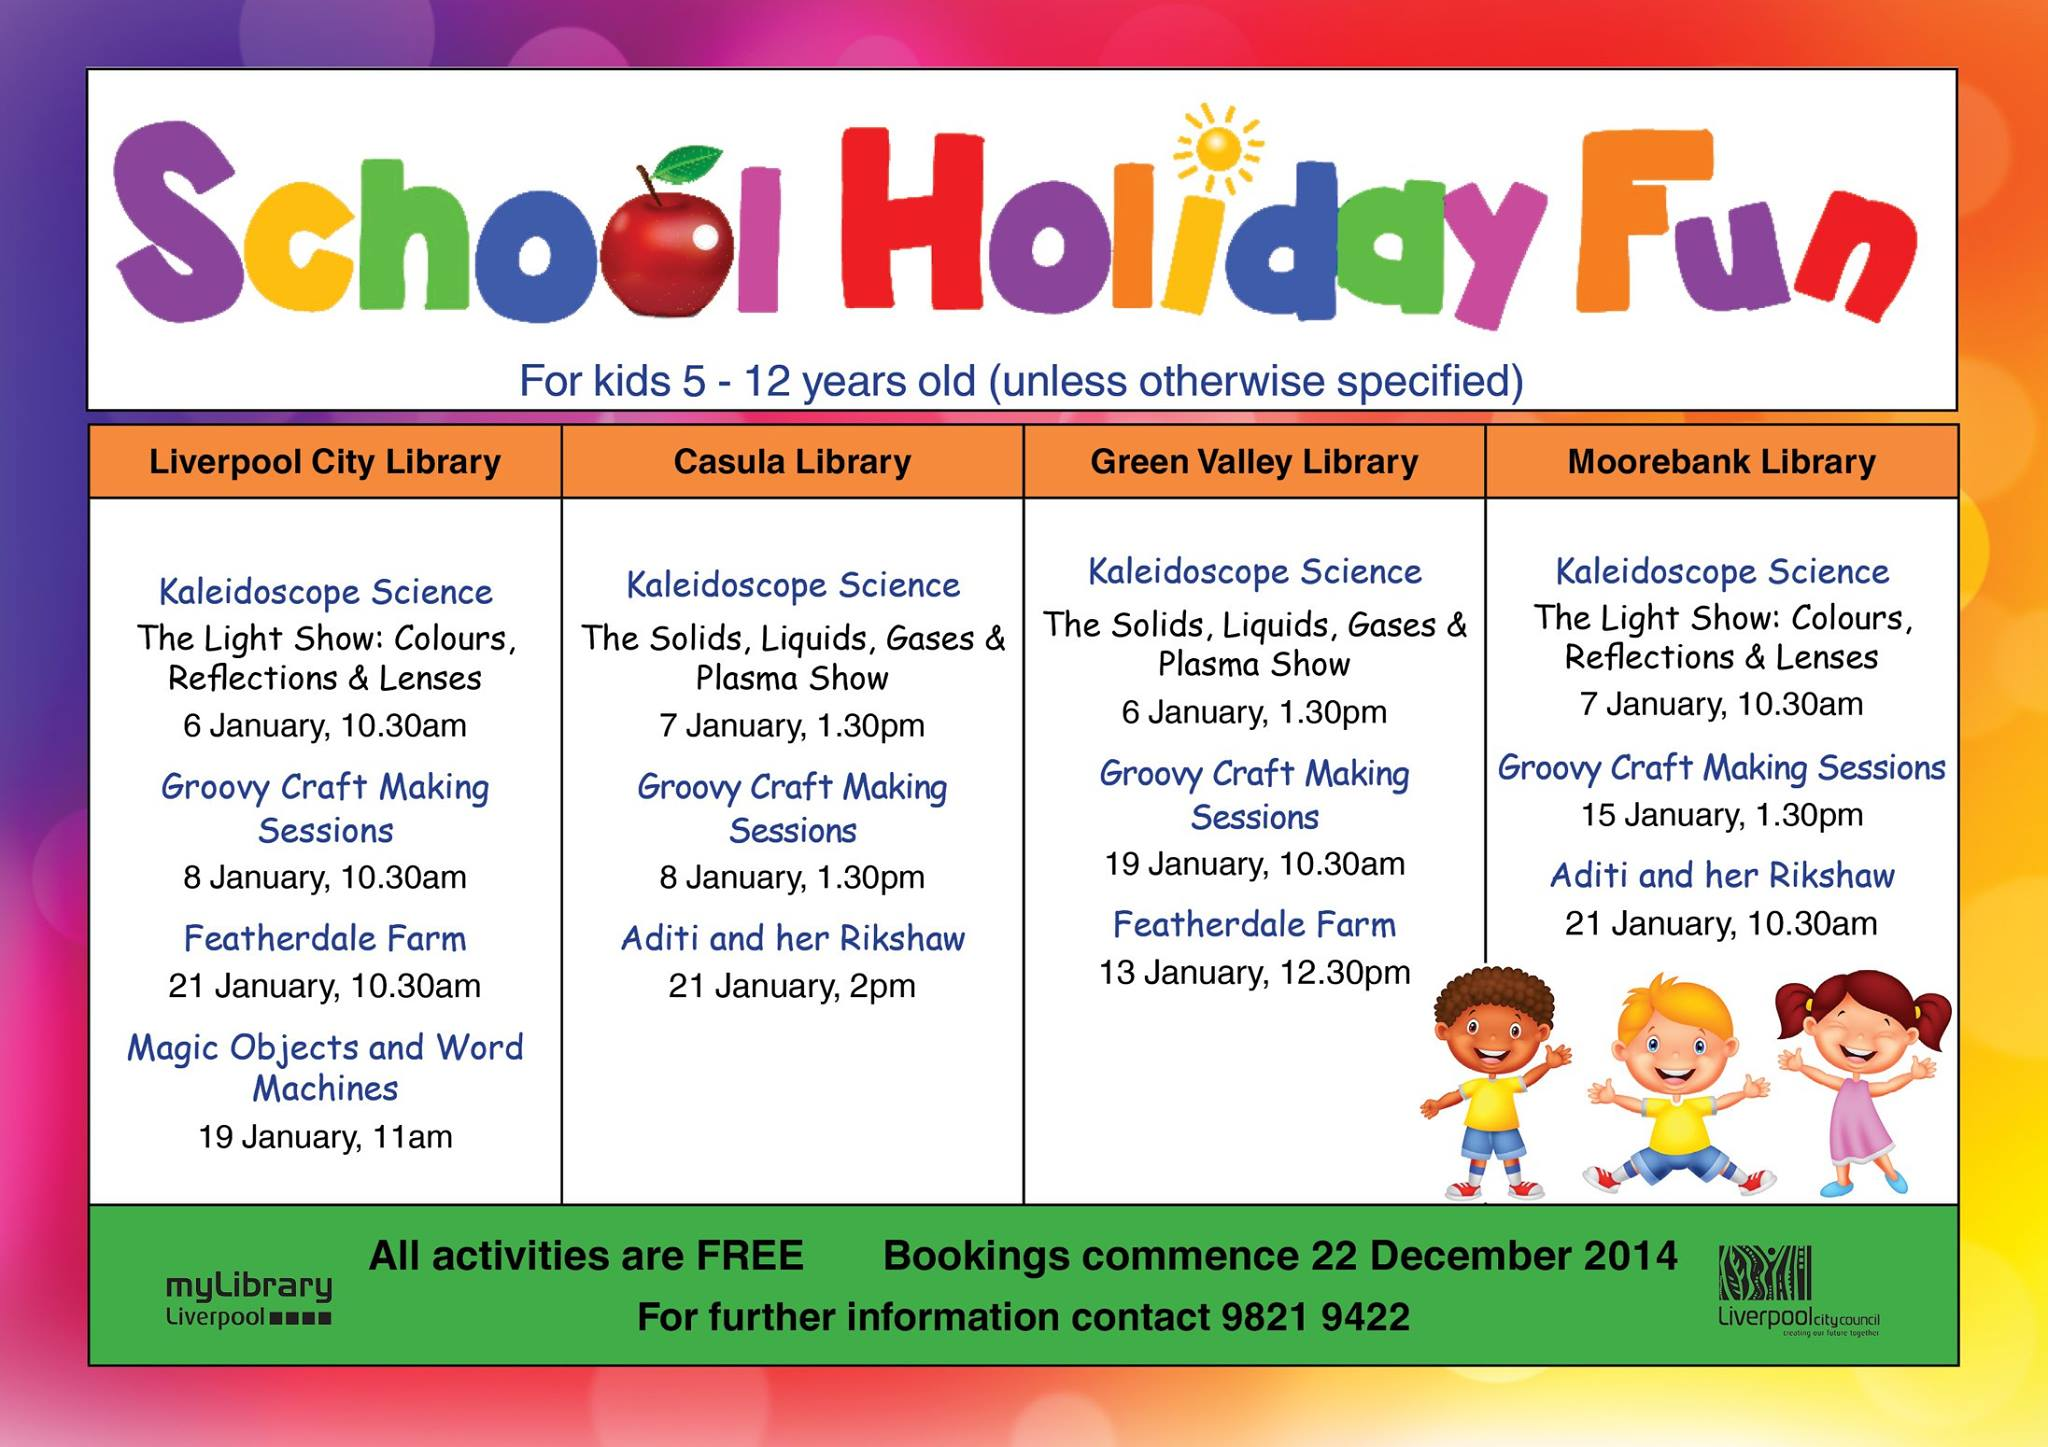 Summer School Holiday Fun For The Kids